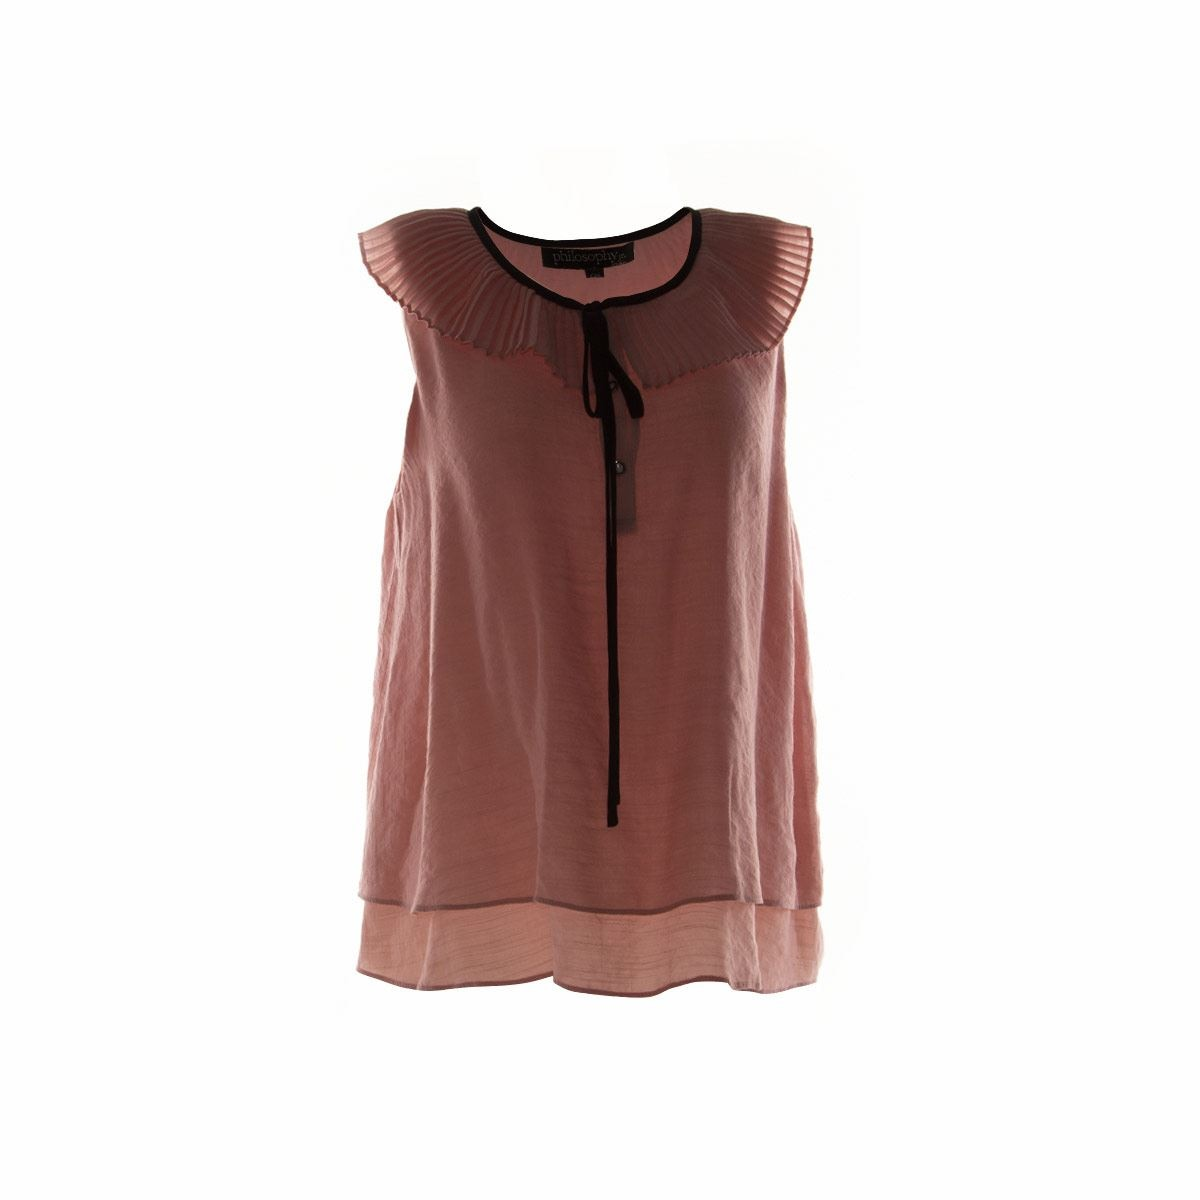 Blusa con jareta M color rosa Philosophy Jr.